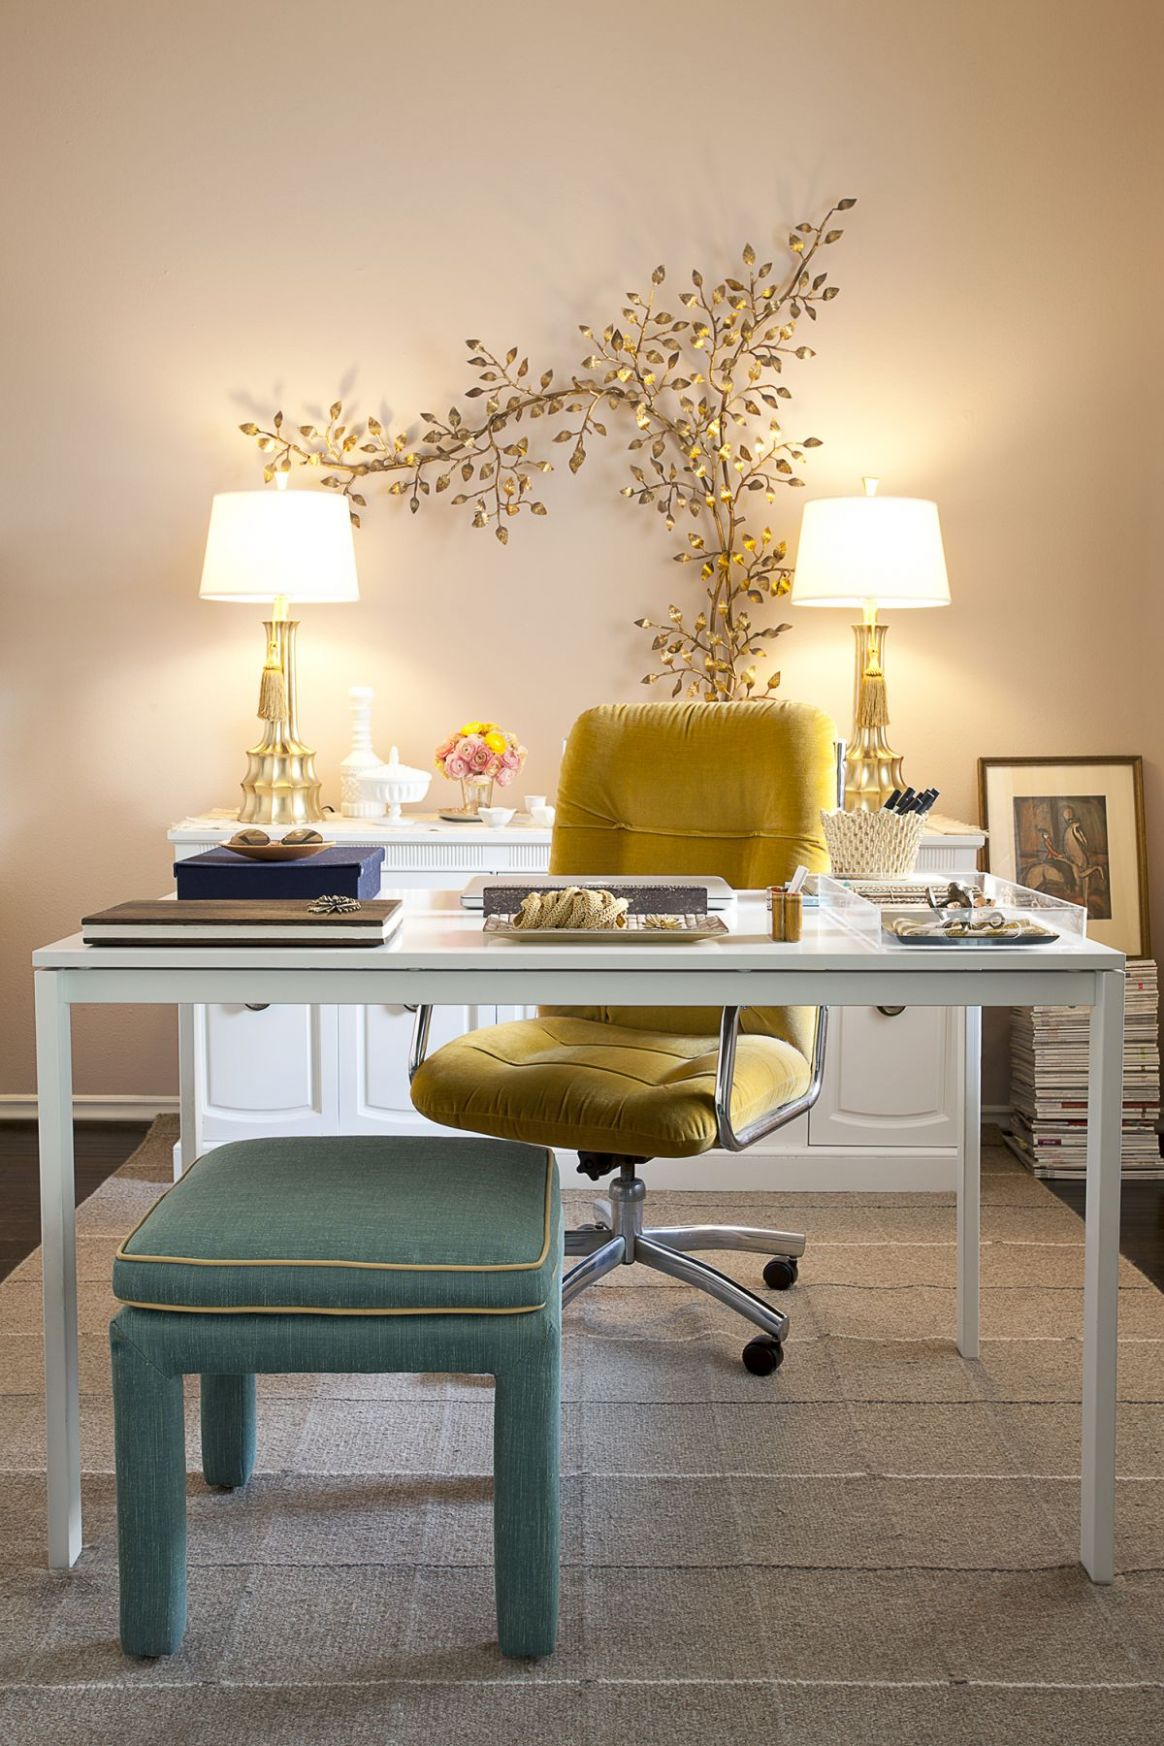 9 Wall Decor Ideas to Take to The Office - wall decor ideas for office